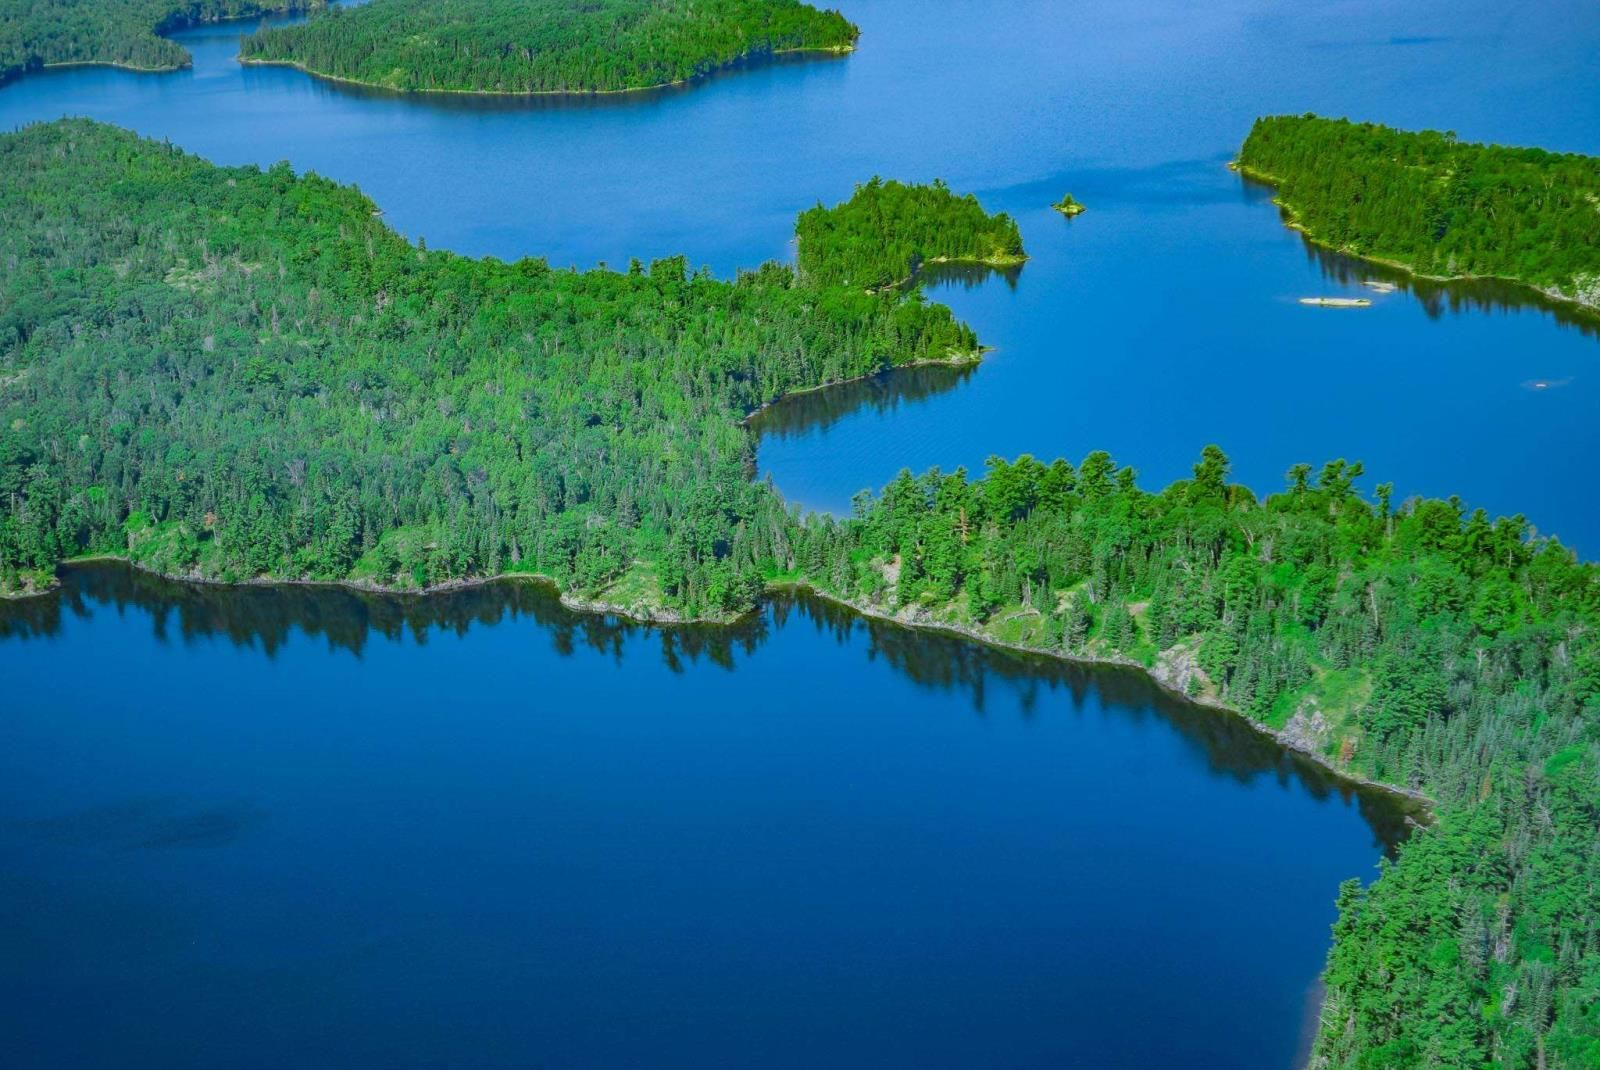 Main Photo: lot 8 Five Point Island in South of Kenora: Vacant Land for sale : MLS®# TB212085